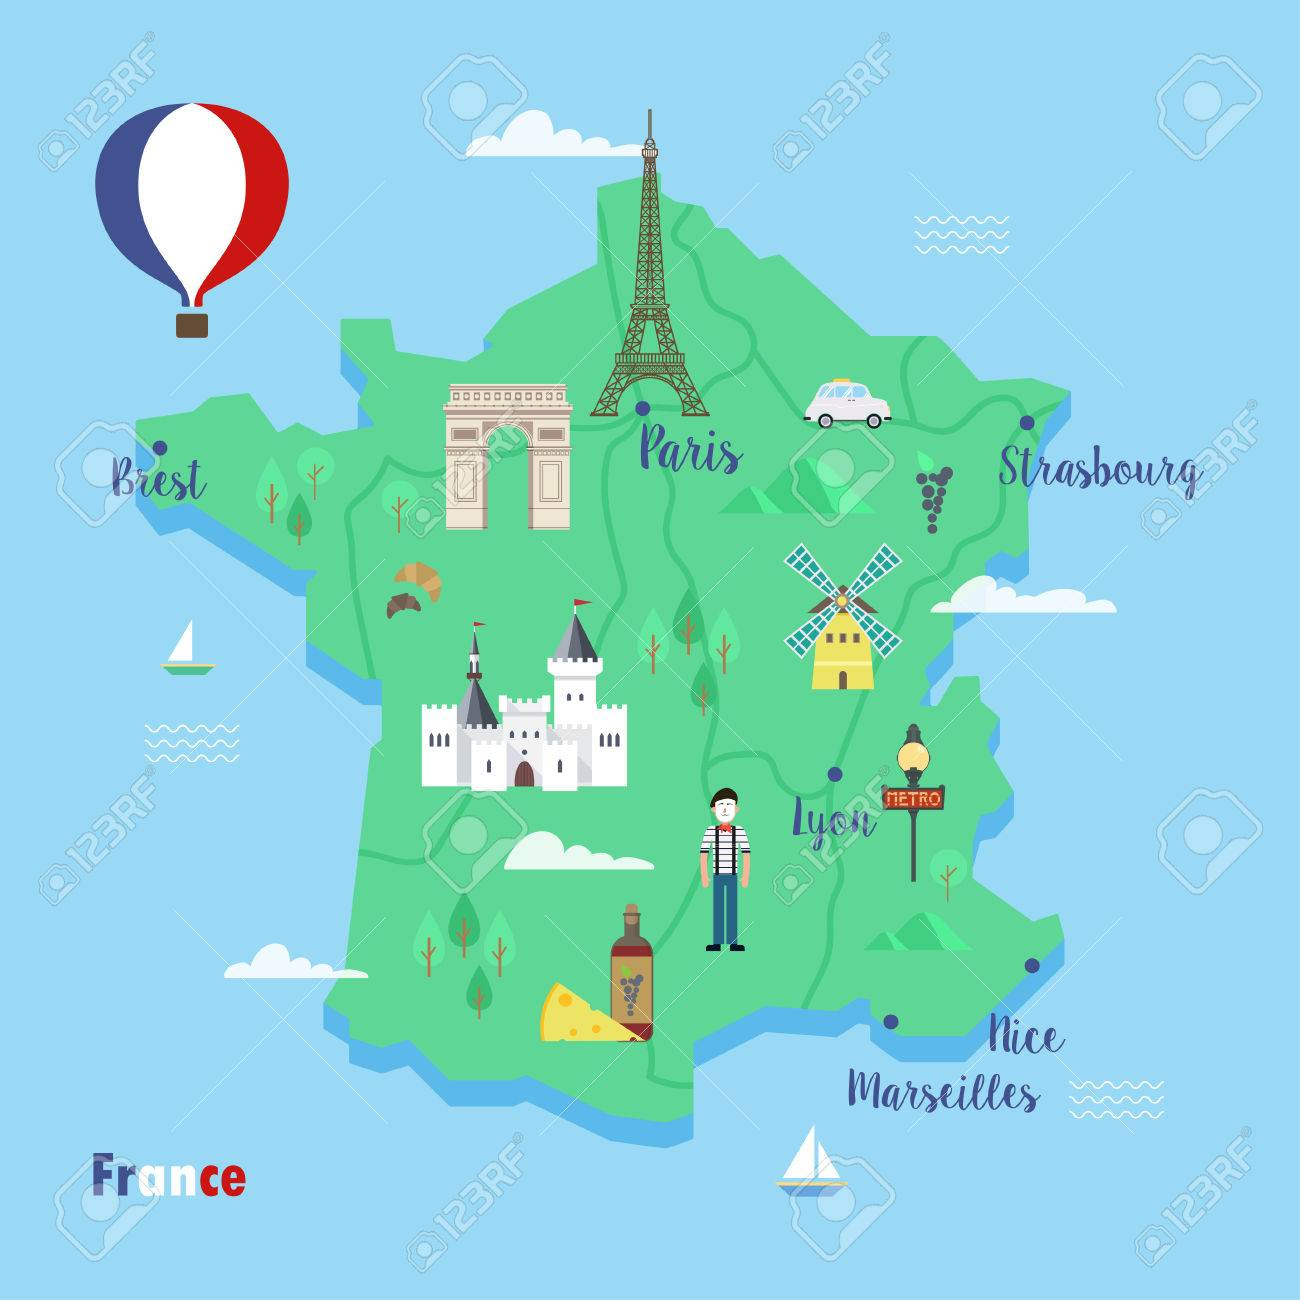 Map Of France Eiffel Tower.France Colorful Travel Maps With Popular Landmarks The Eiffel